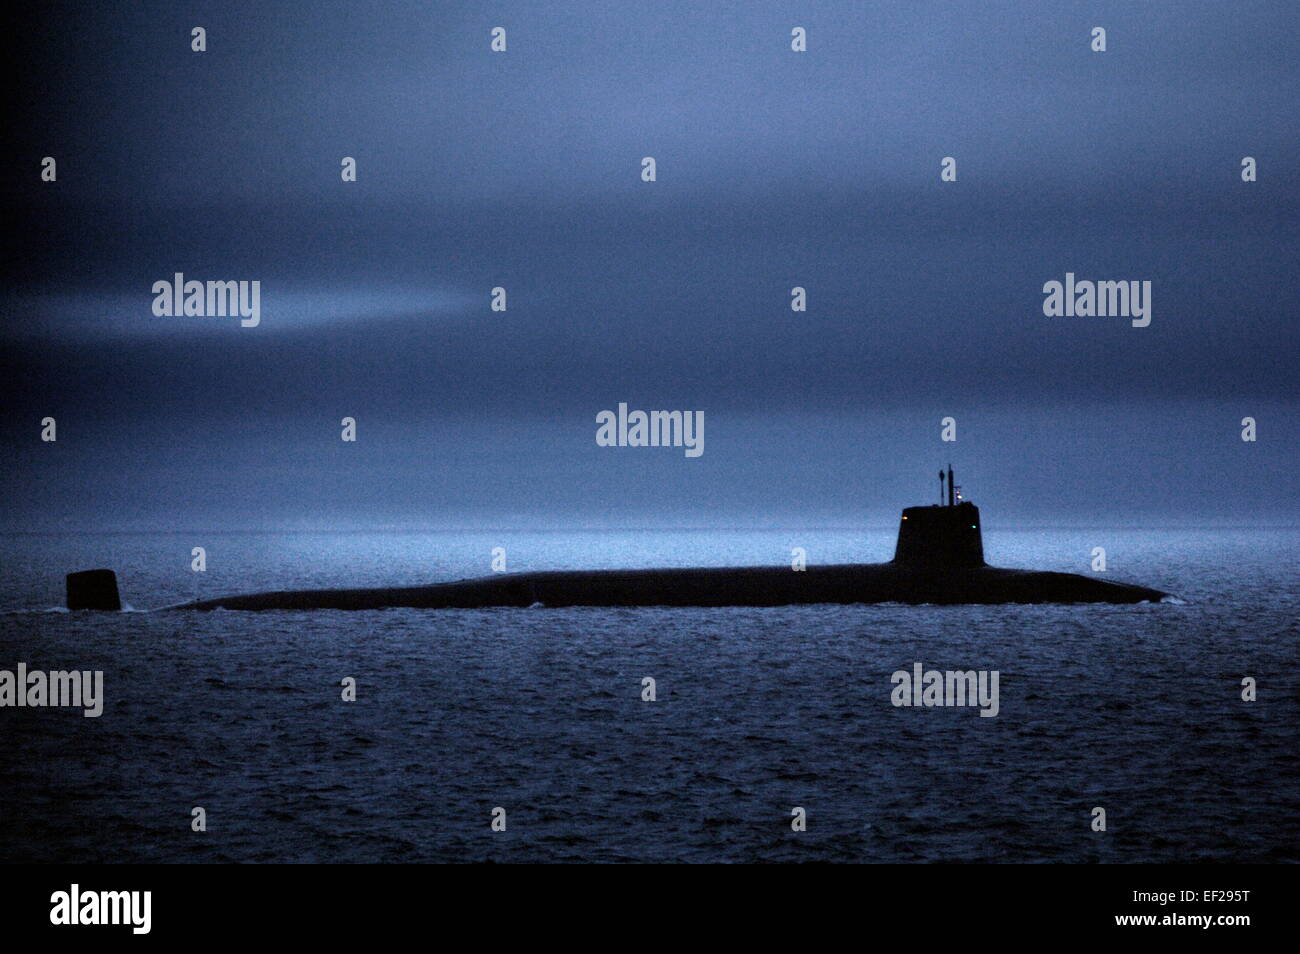 AJAXNETPHOTO. - 27 FEB, 2012. AT SEA.UK TERRITORIAL WATERS. HMS VENGEANCE ON SURFACE PASSAGE IN THE FIRTH OF CLYDE. - Stock Image